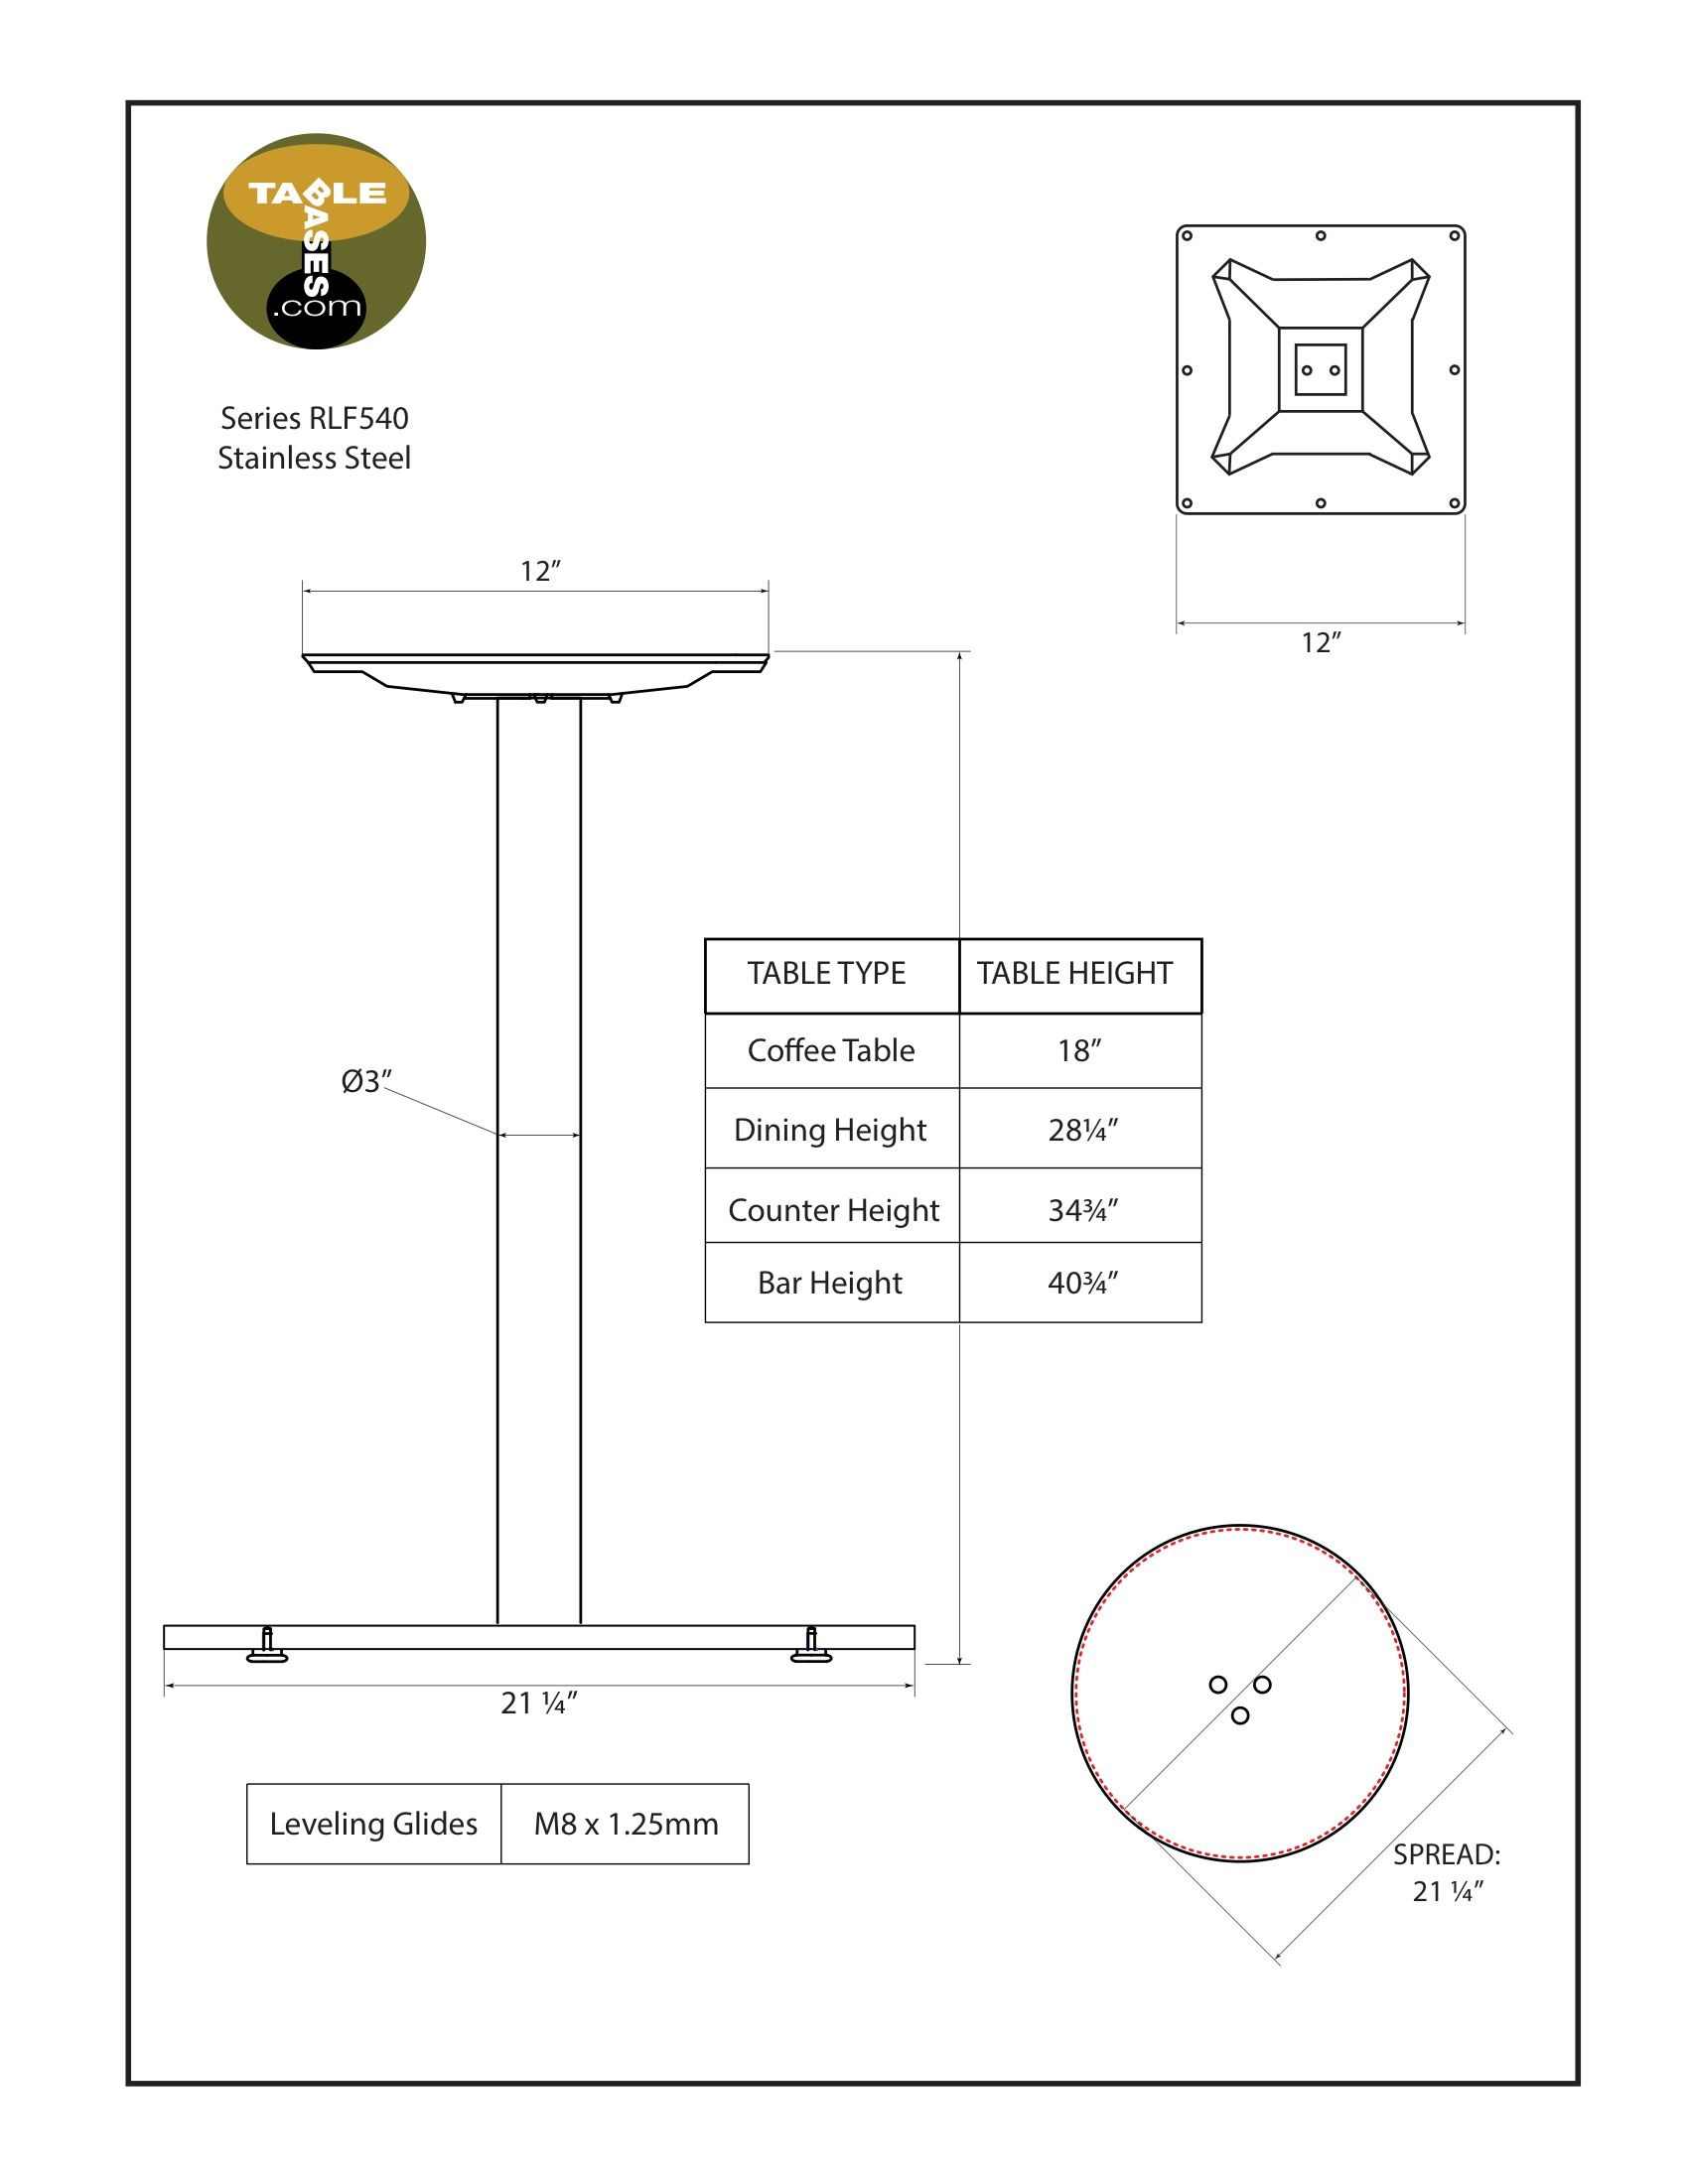 RFL540 Stainless Steel Table Base Specifications